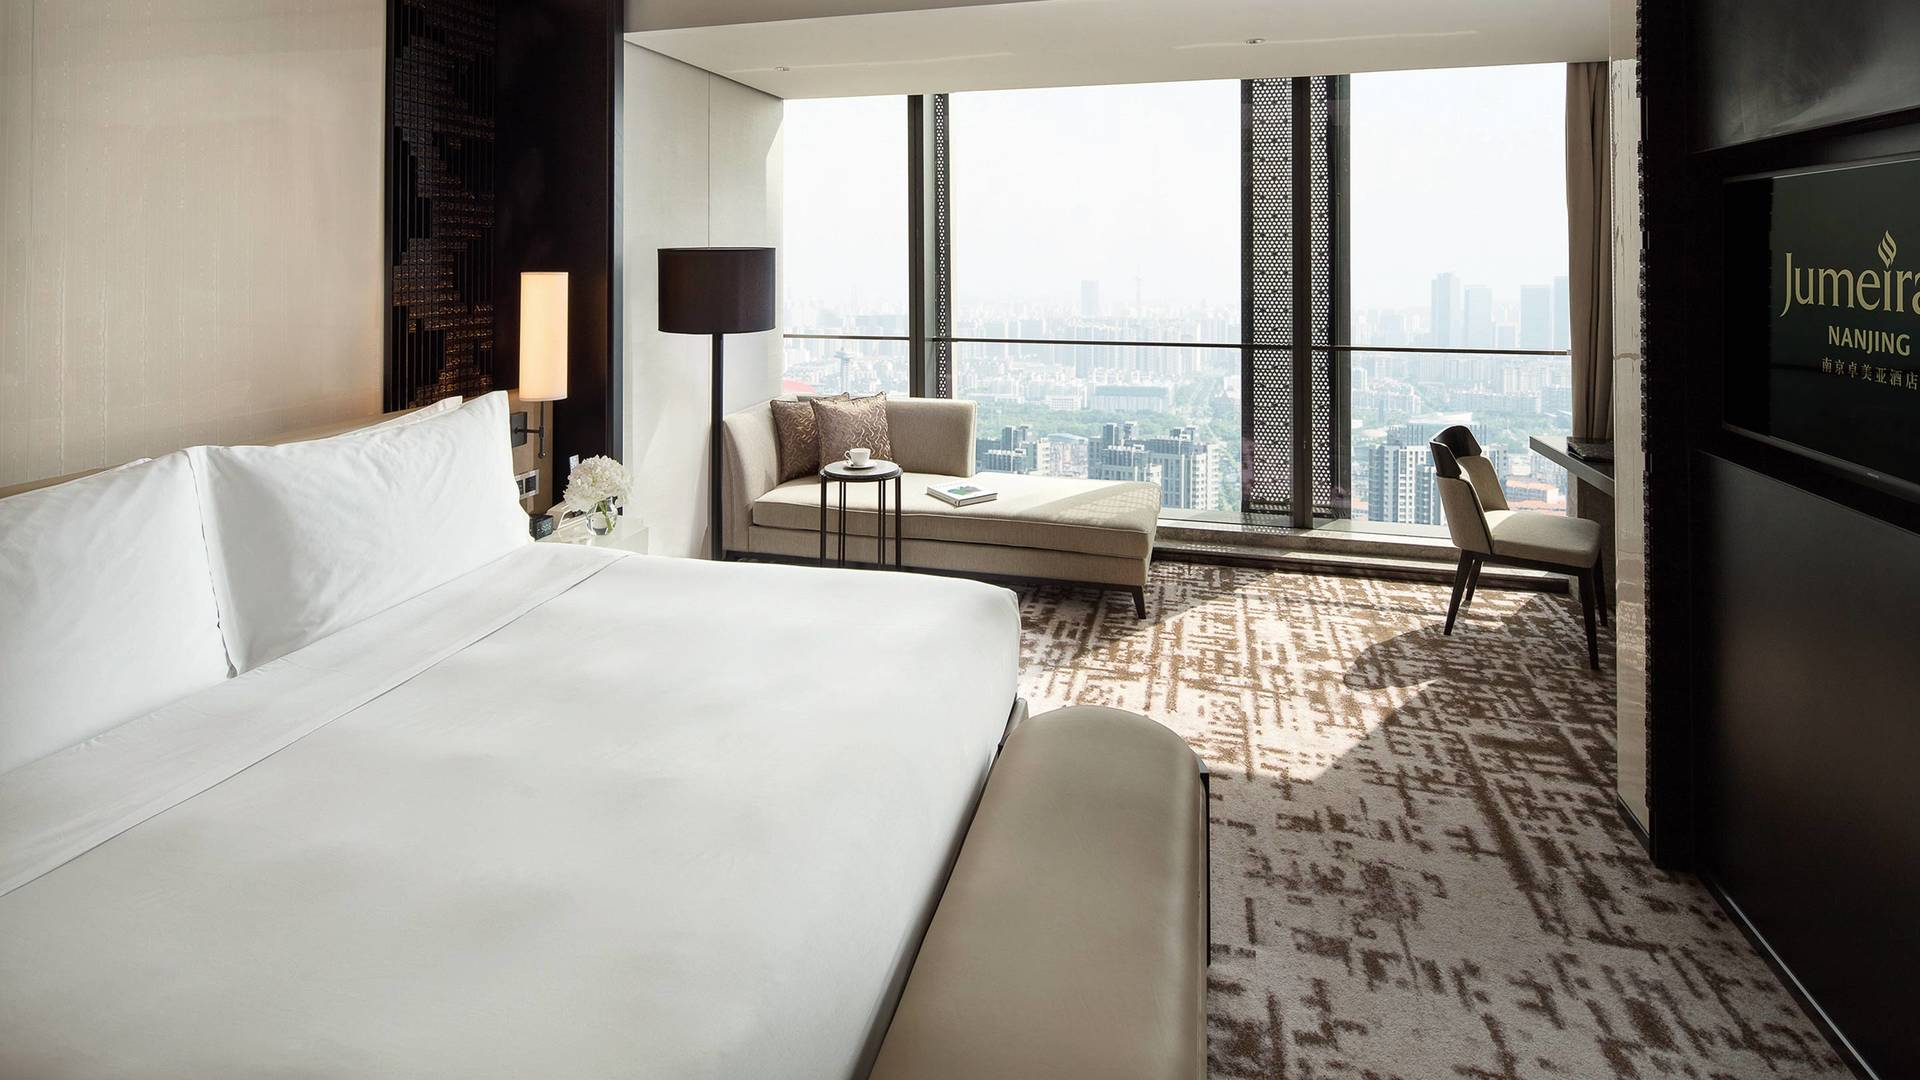 Jumeirah Nanjing Deluxe King Room with City View